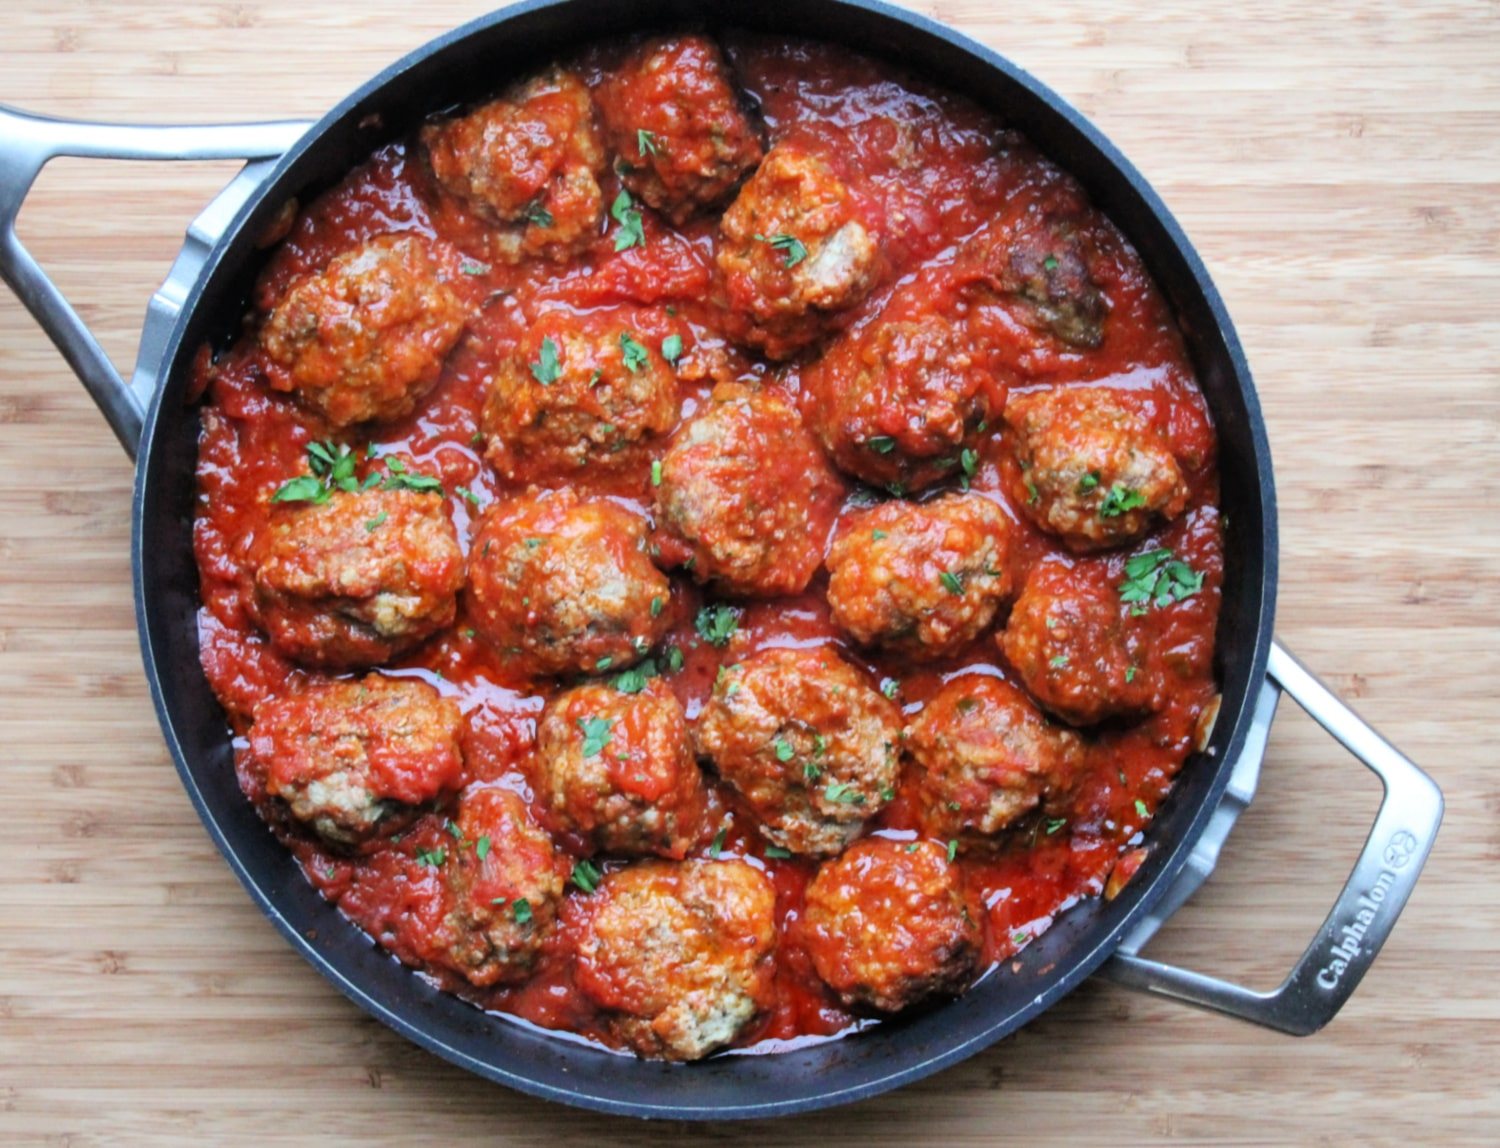 Turkey Meatballs in skillet with tomato sauce